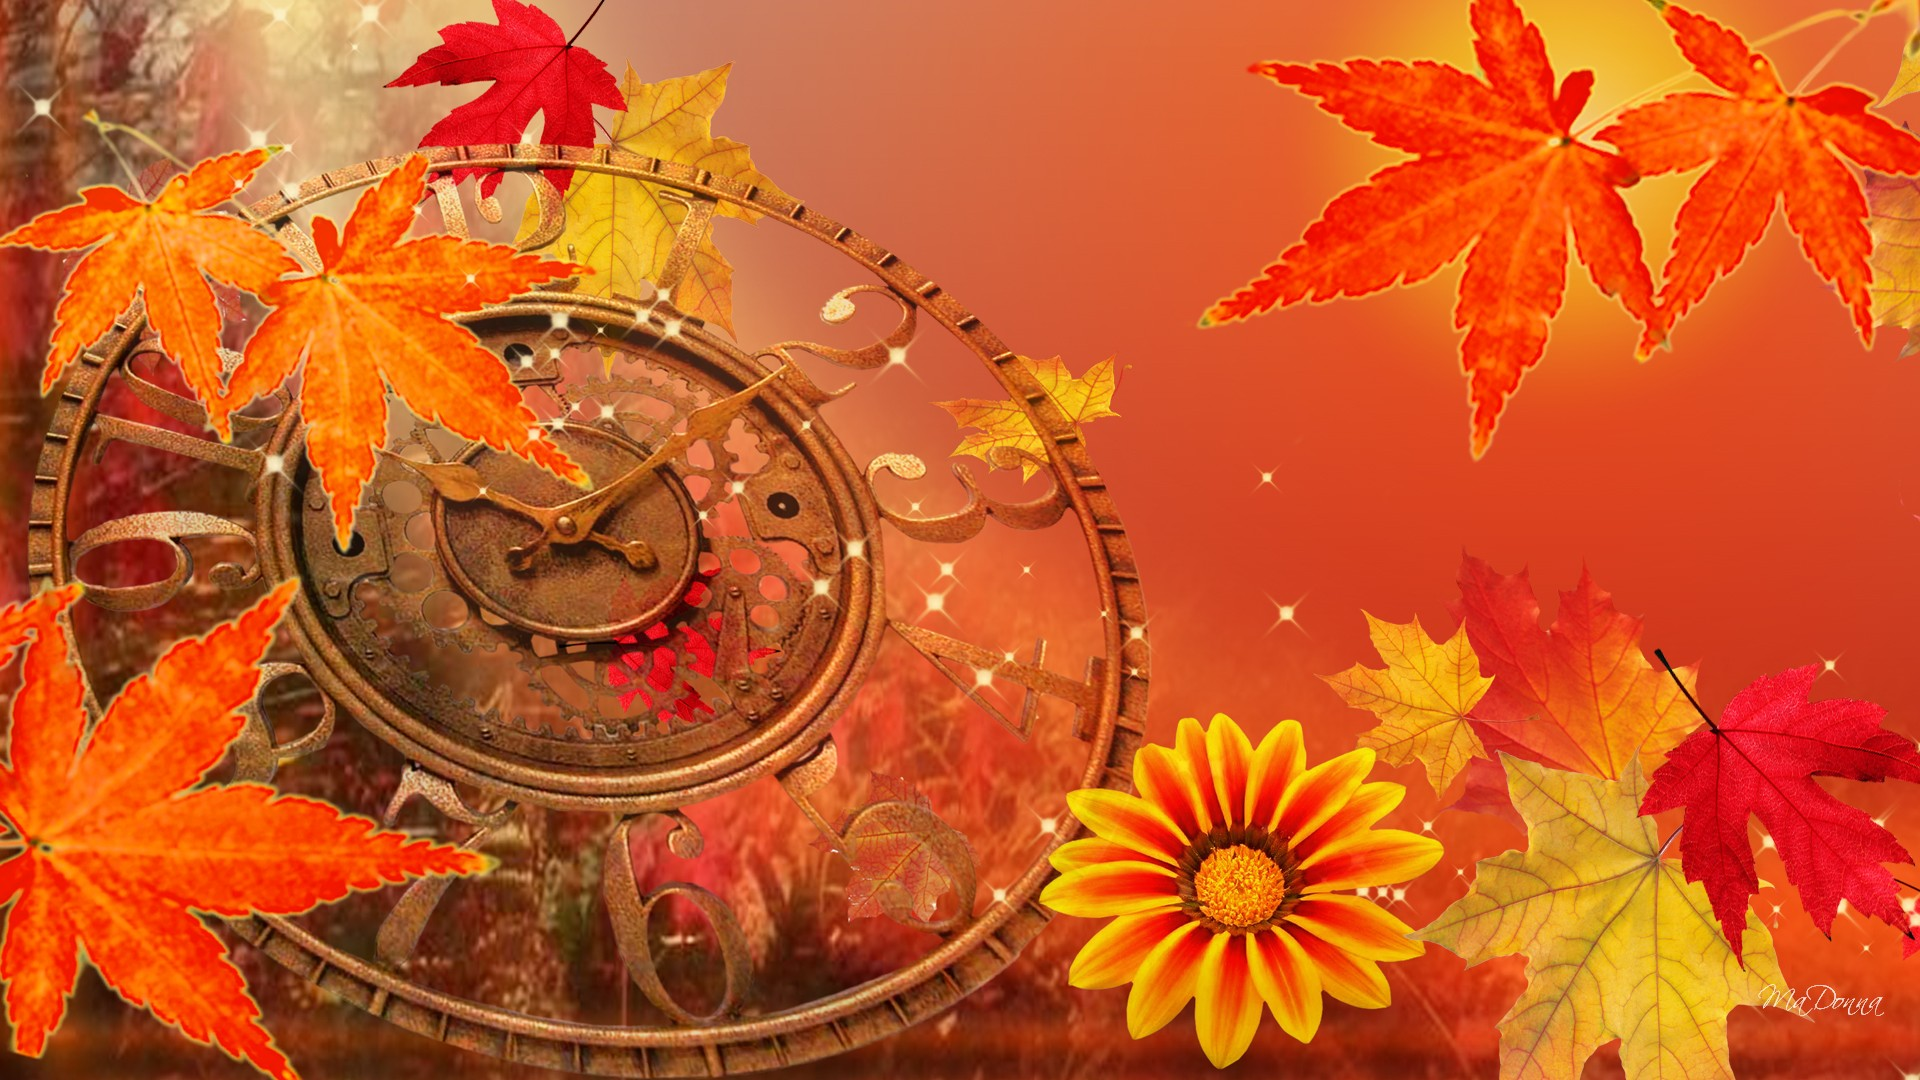 Clock Falling Back 1920x1080 Full HD Wallpaper , Free Wallpaper ID